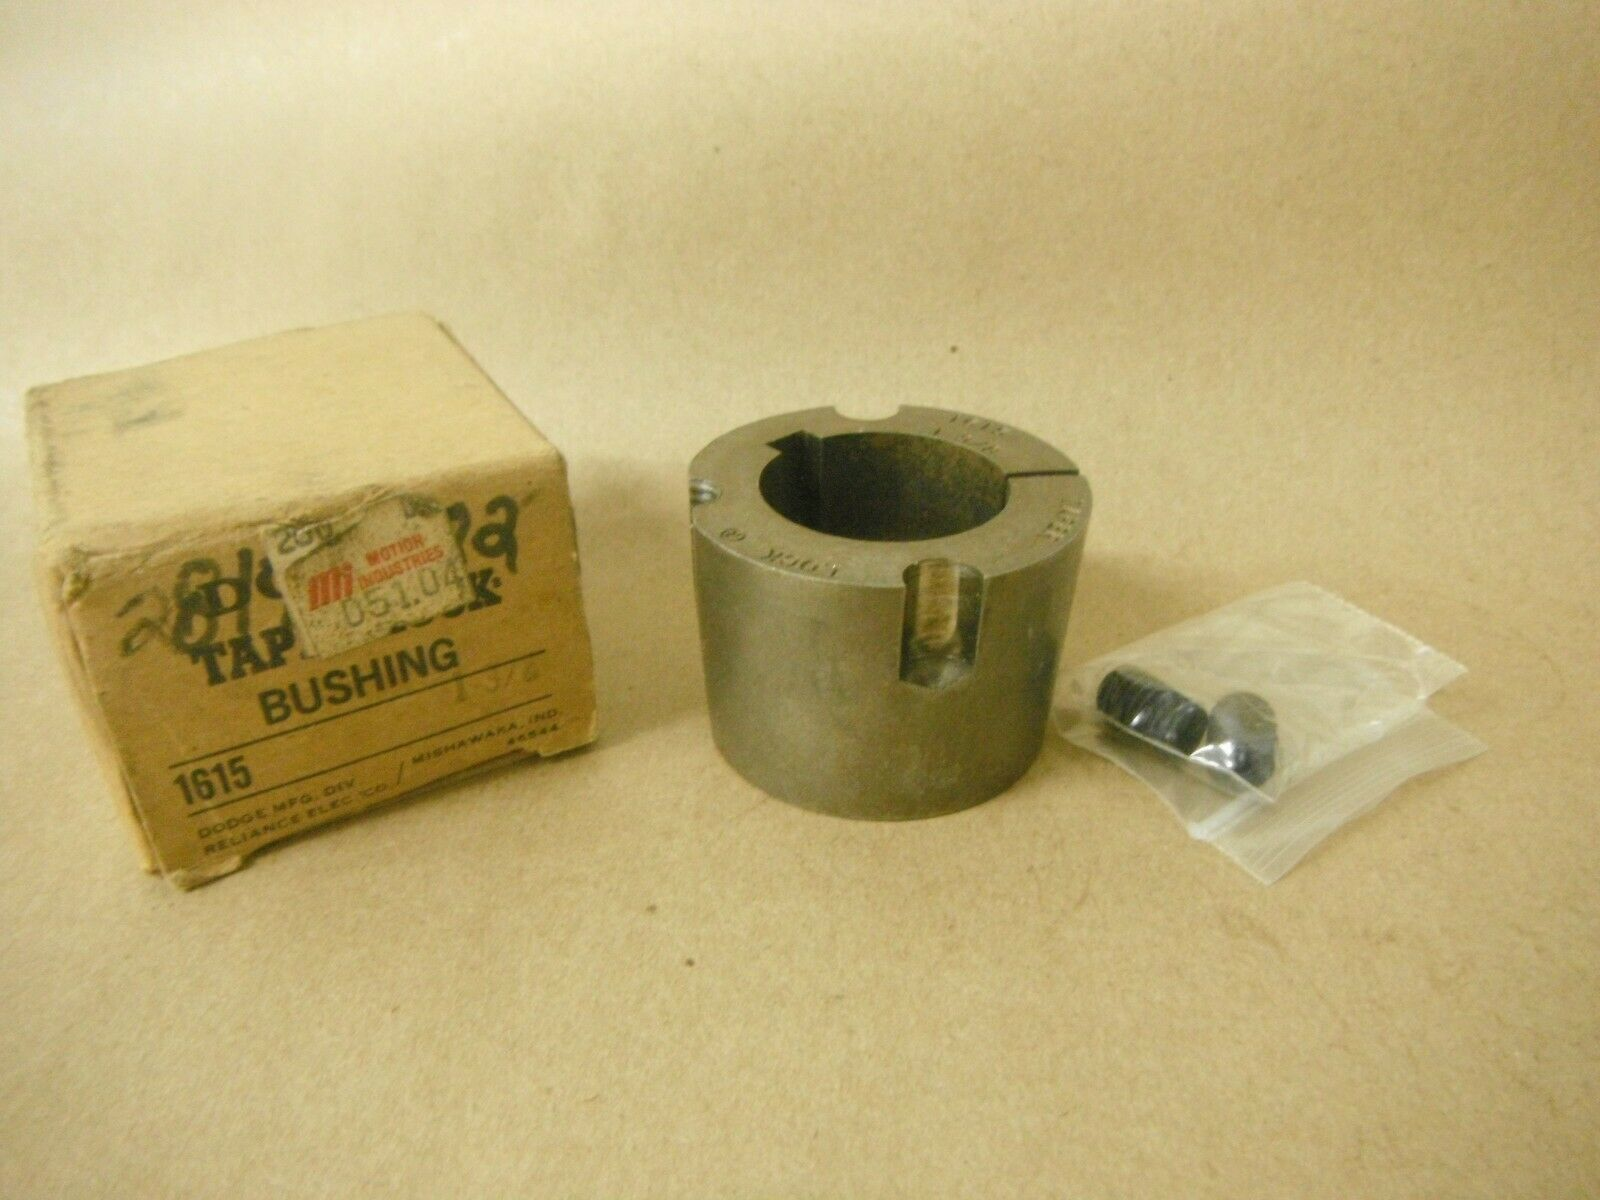 Primary image for 1615 X 1-3/8 BUSHING